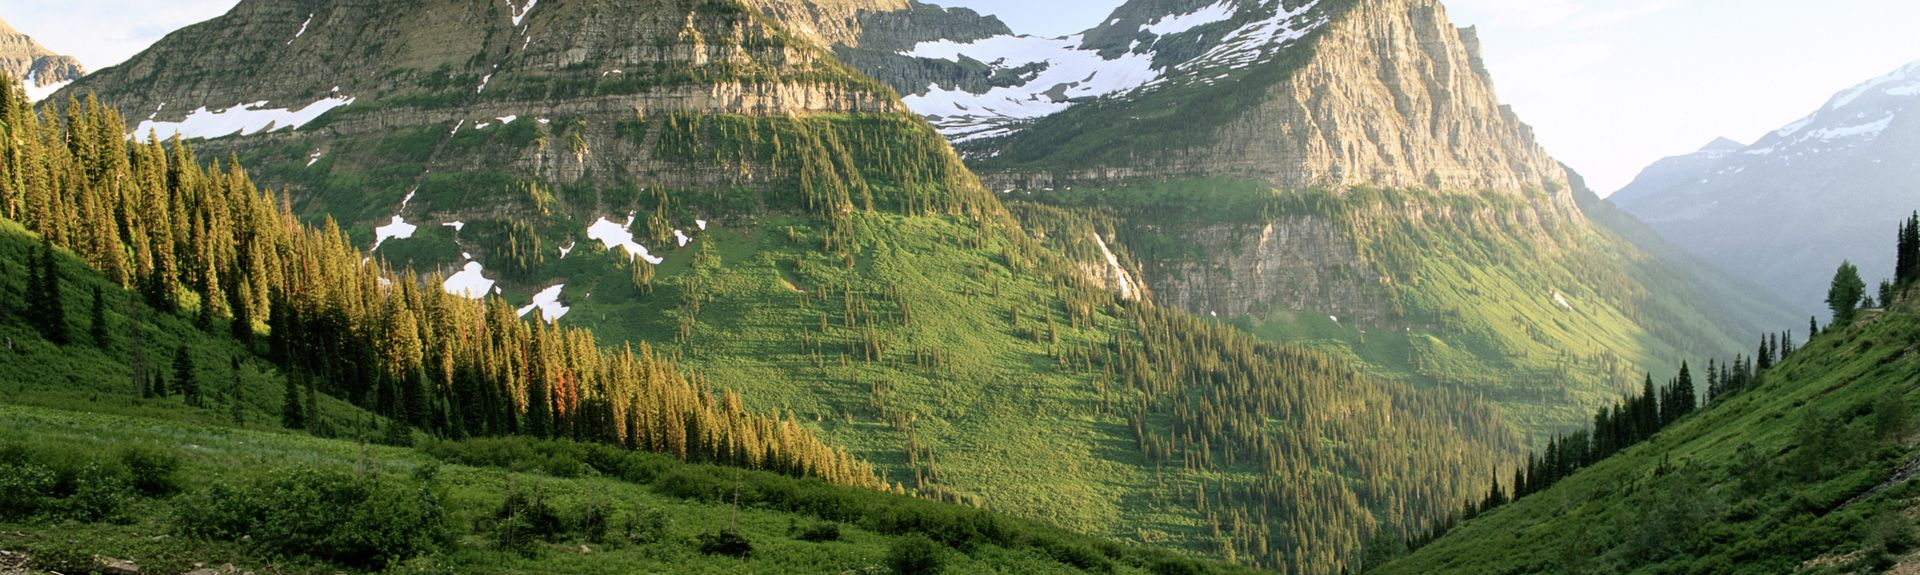 West Glacier, Montana, United States